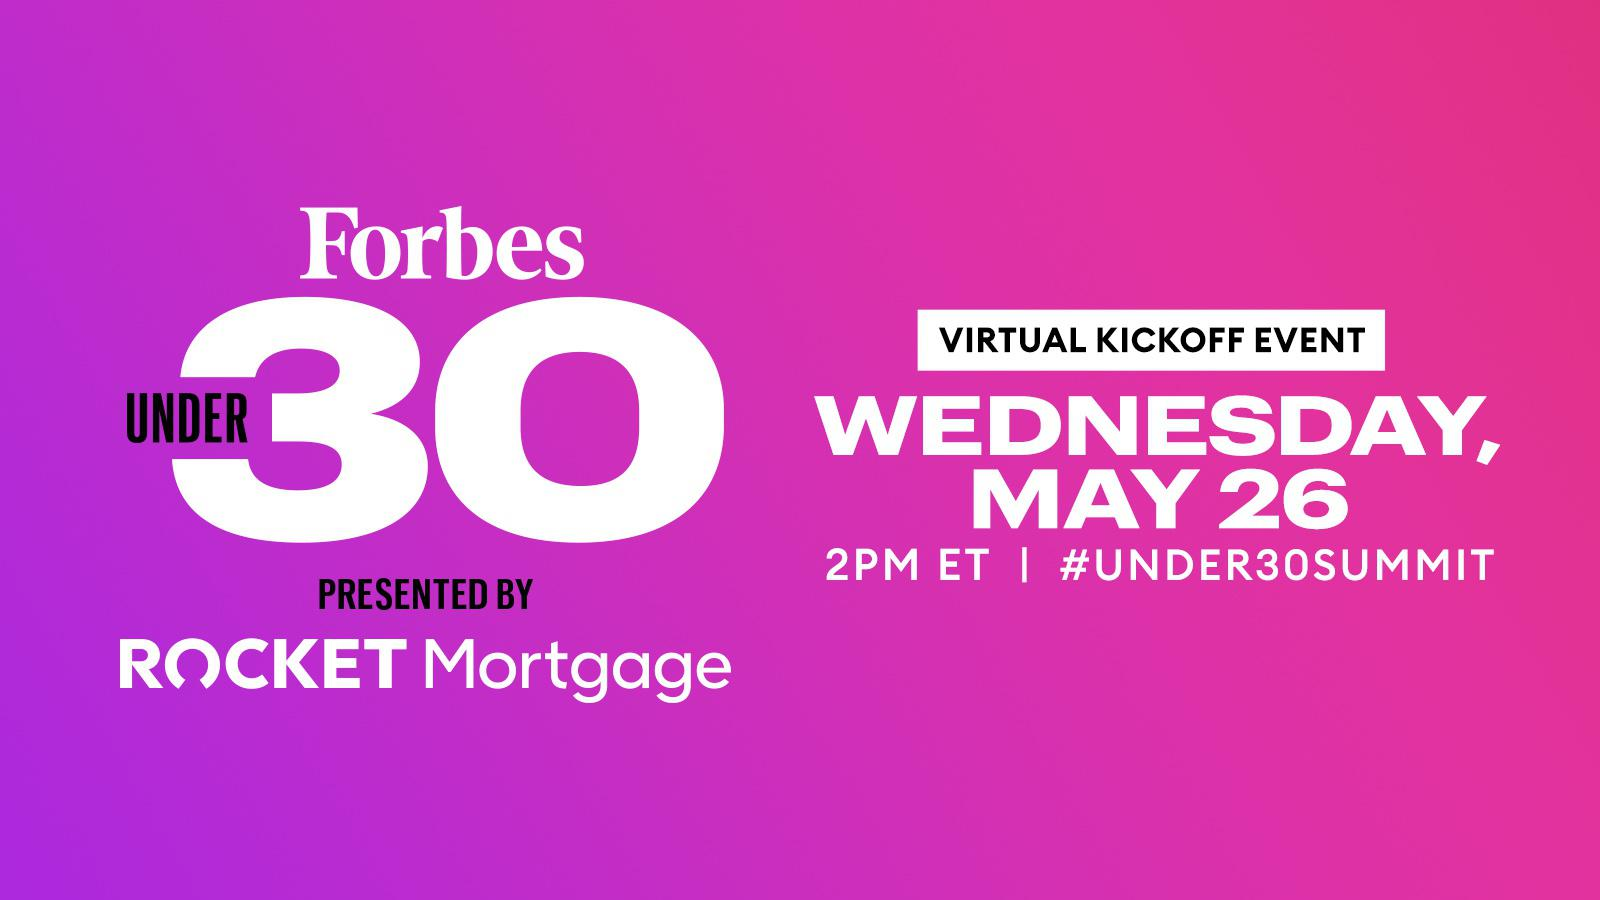 Forbes Under 30 Kick-Off